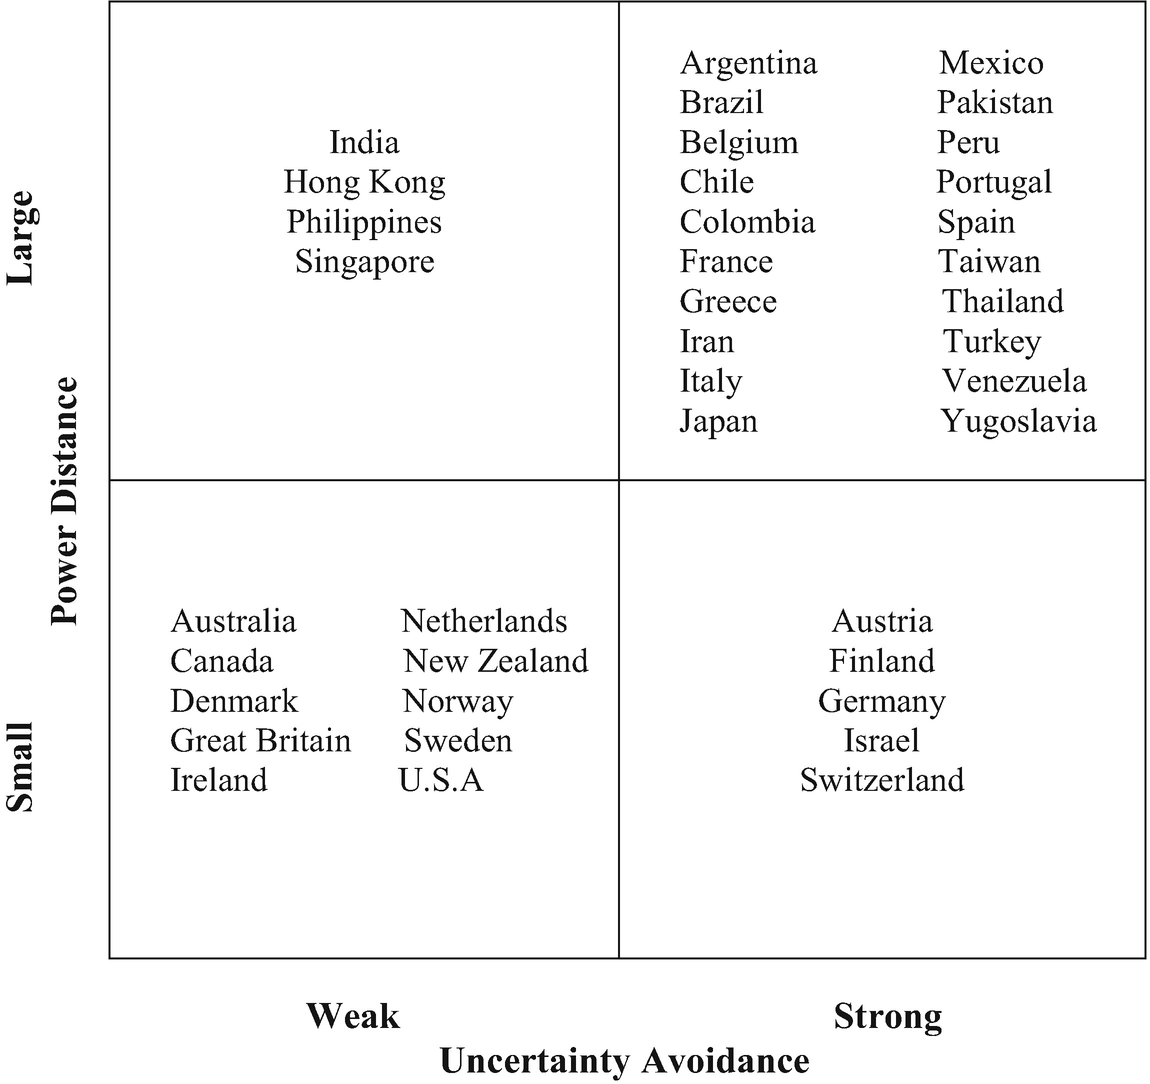 Managerial Leadership and Motivation in an International